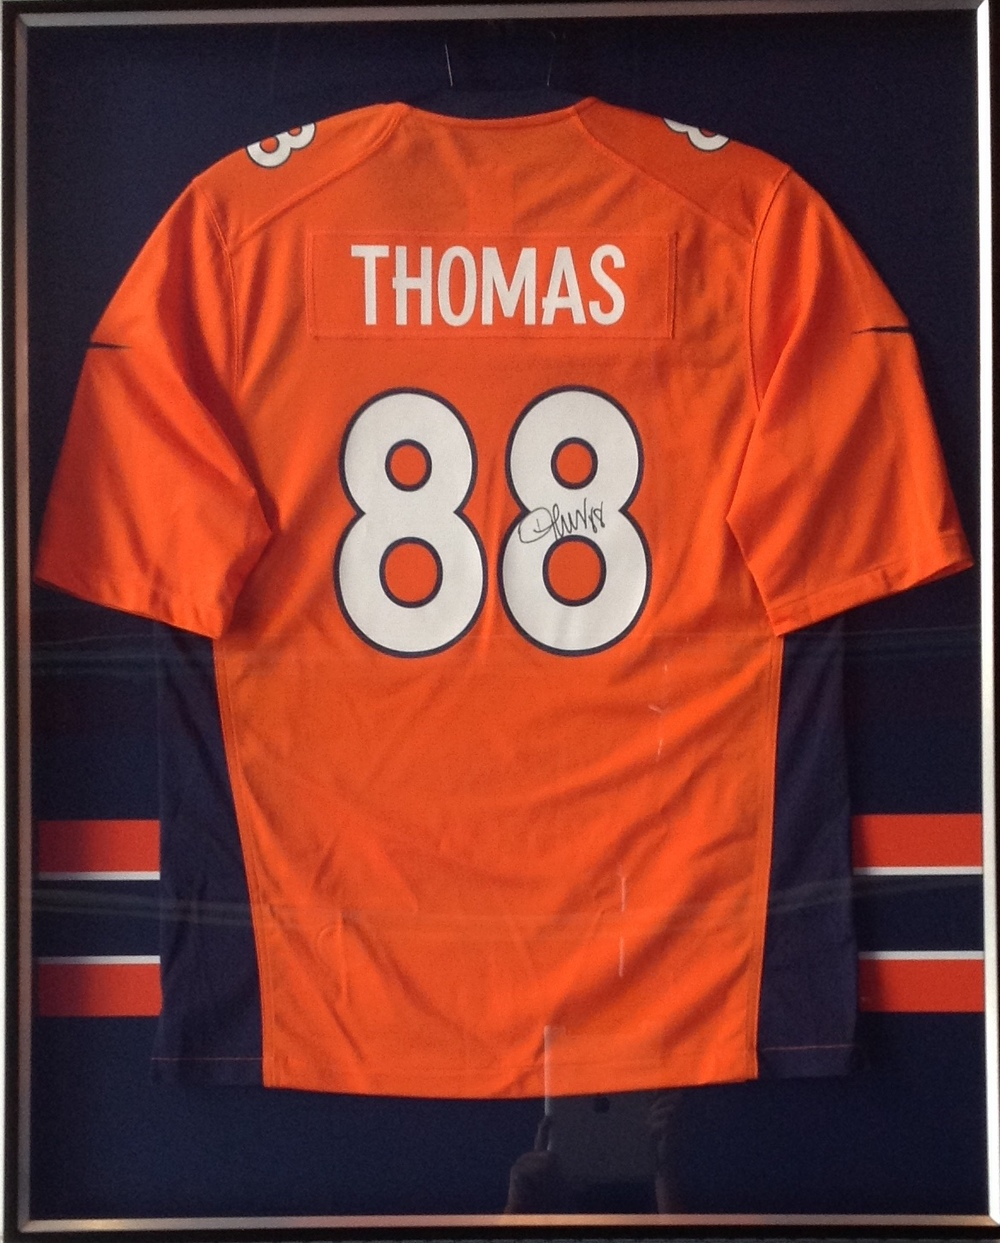 Demarius Thomas jersey with custom mat stripes